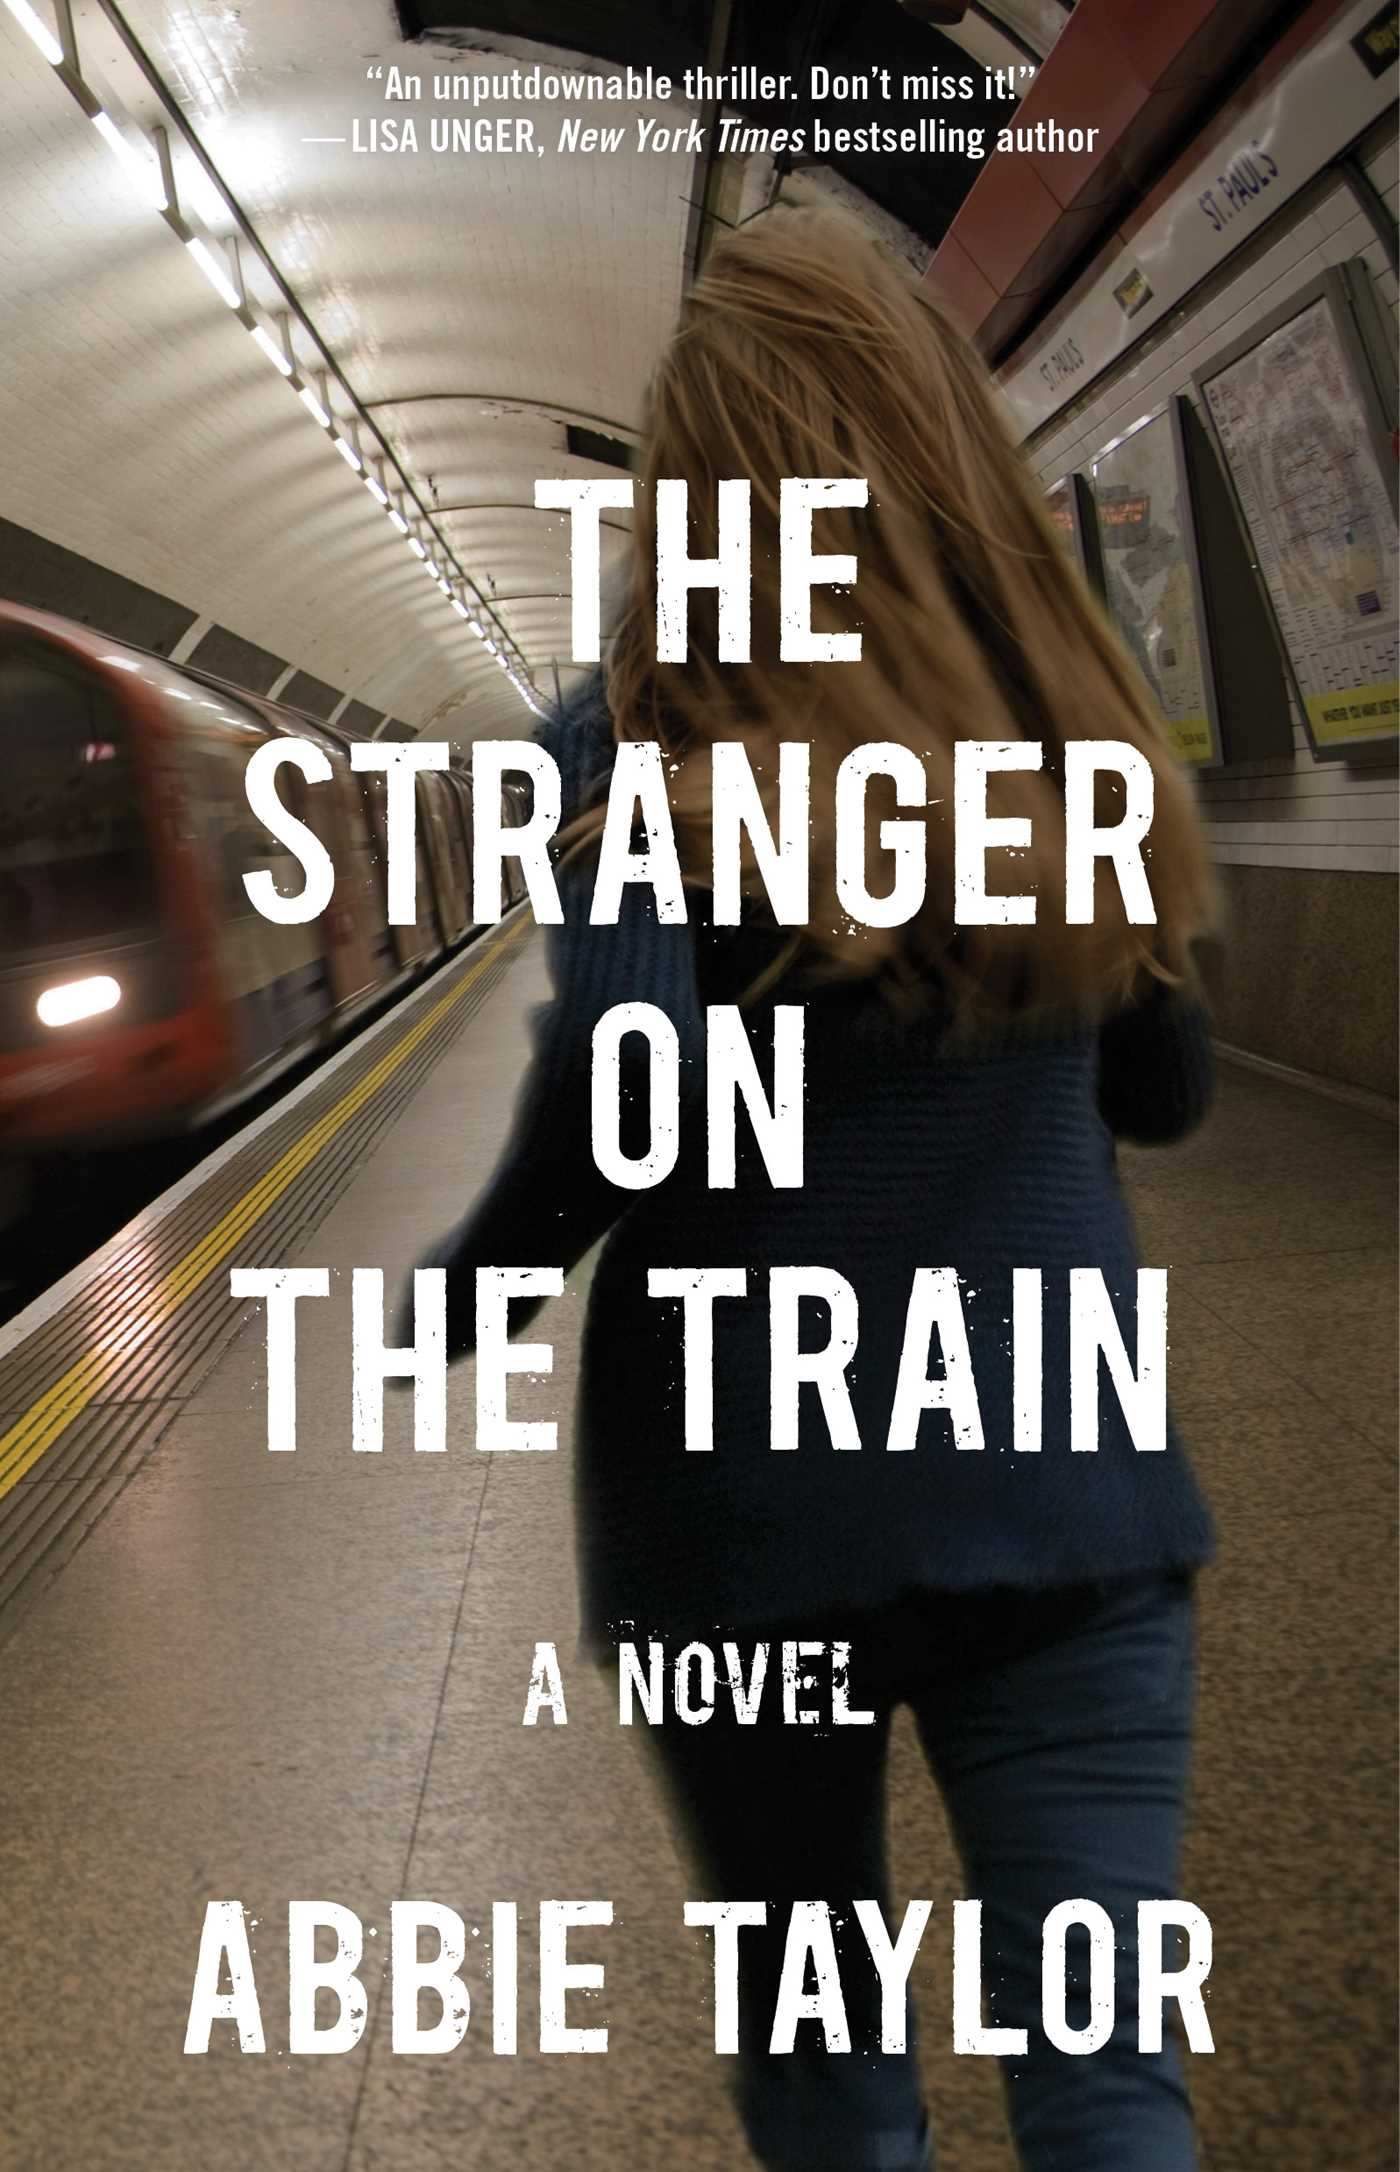 Stranger-on-the-train-9781476754970_hr